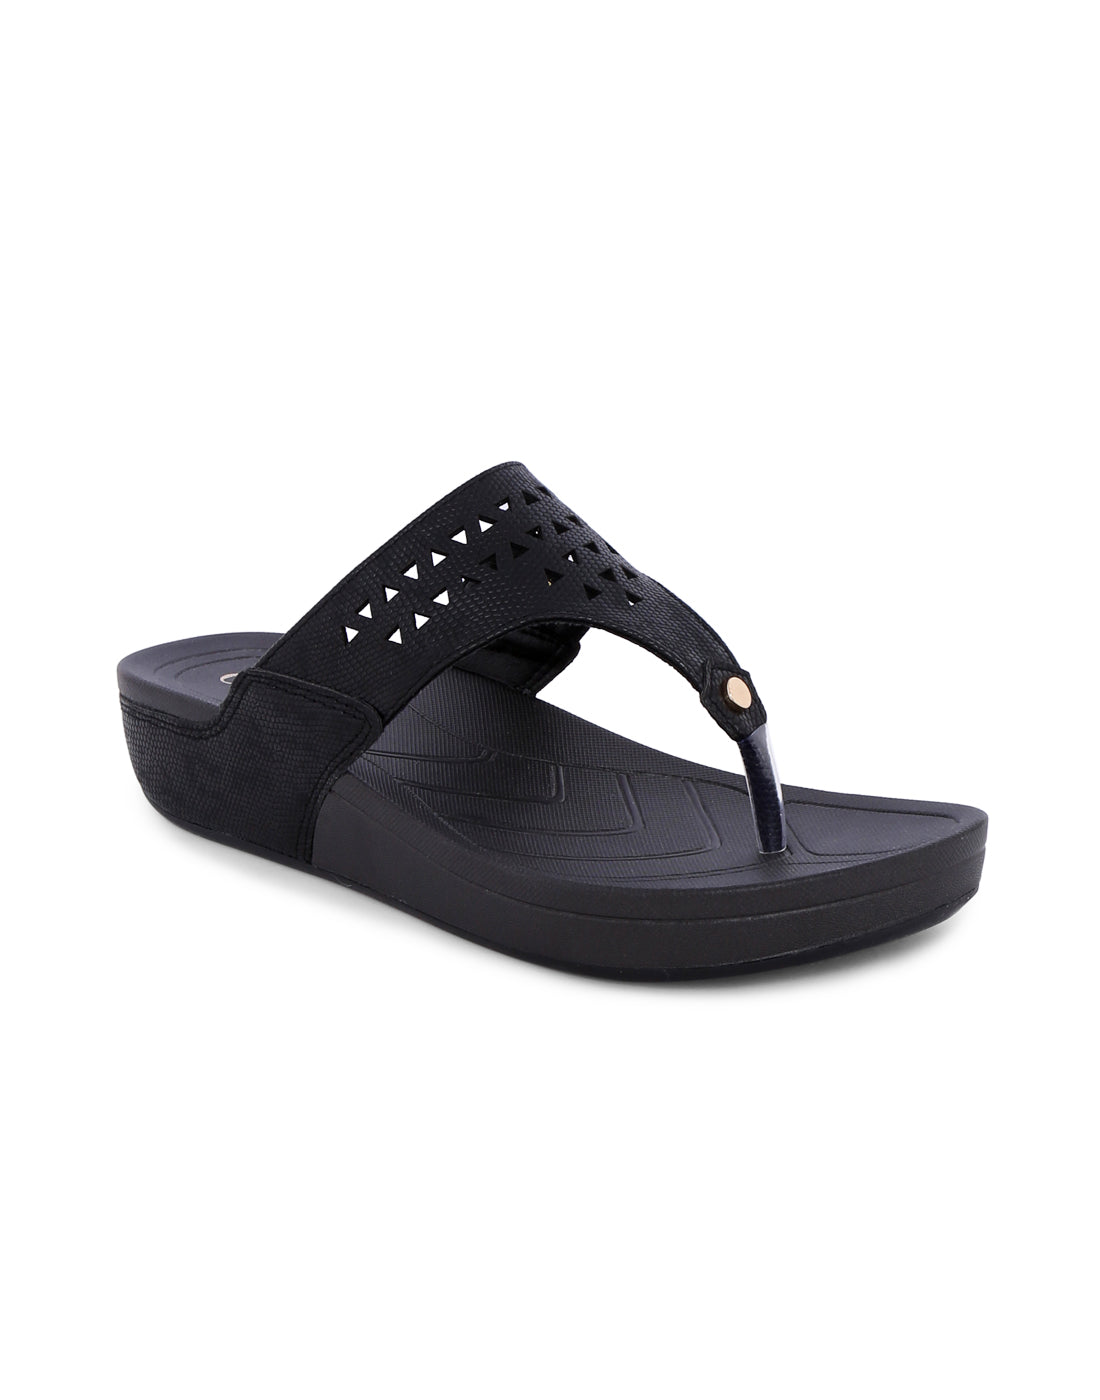 Afiaa Black Perforated Sandals